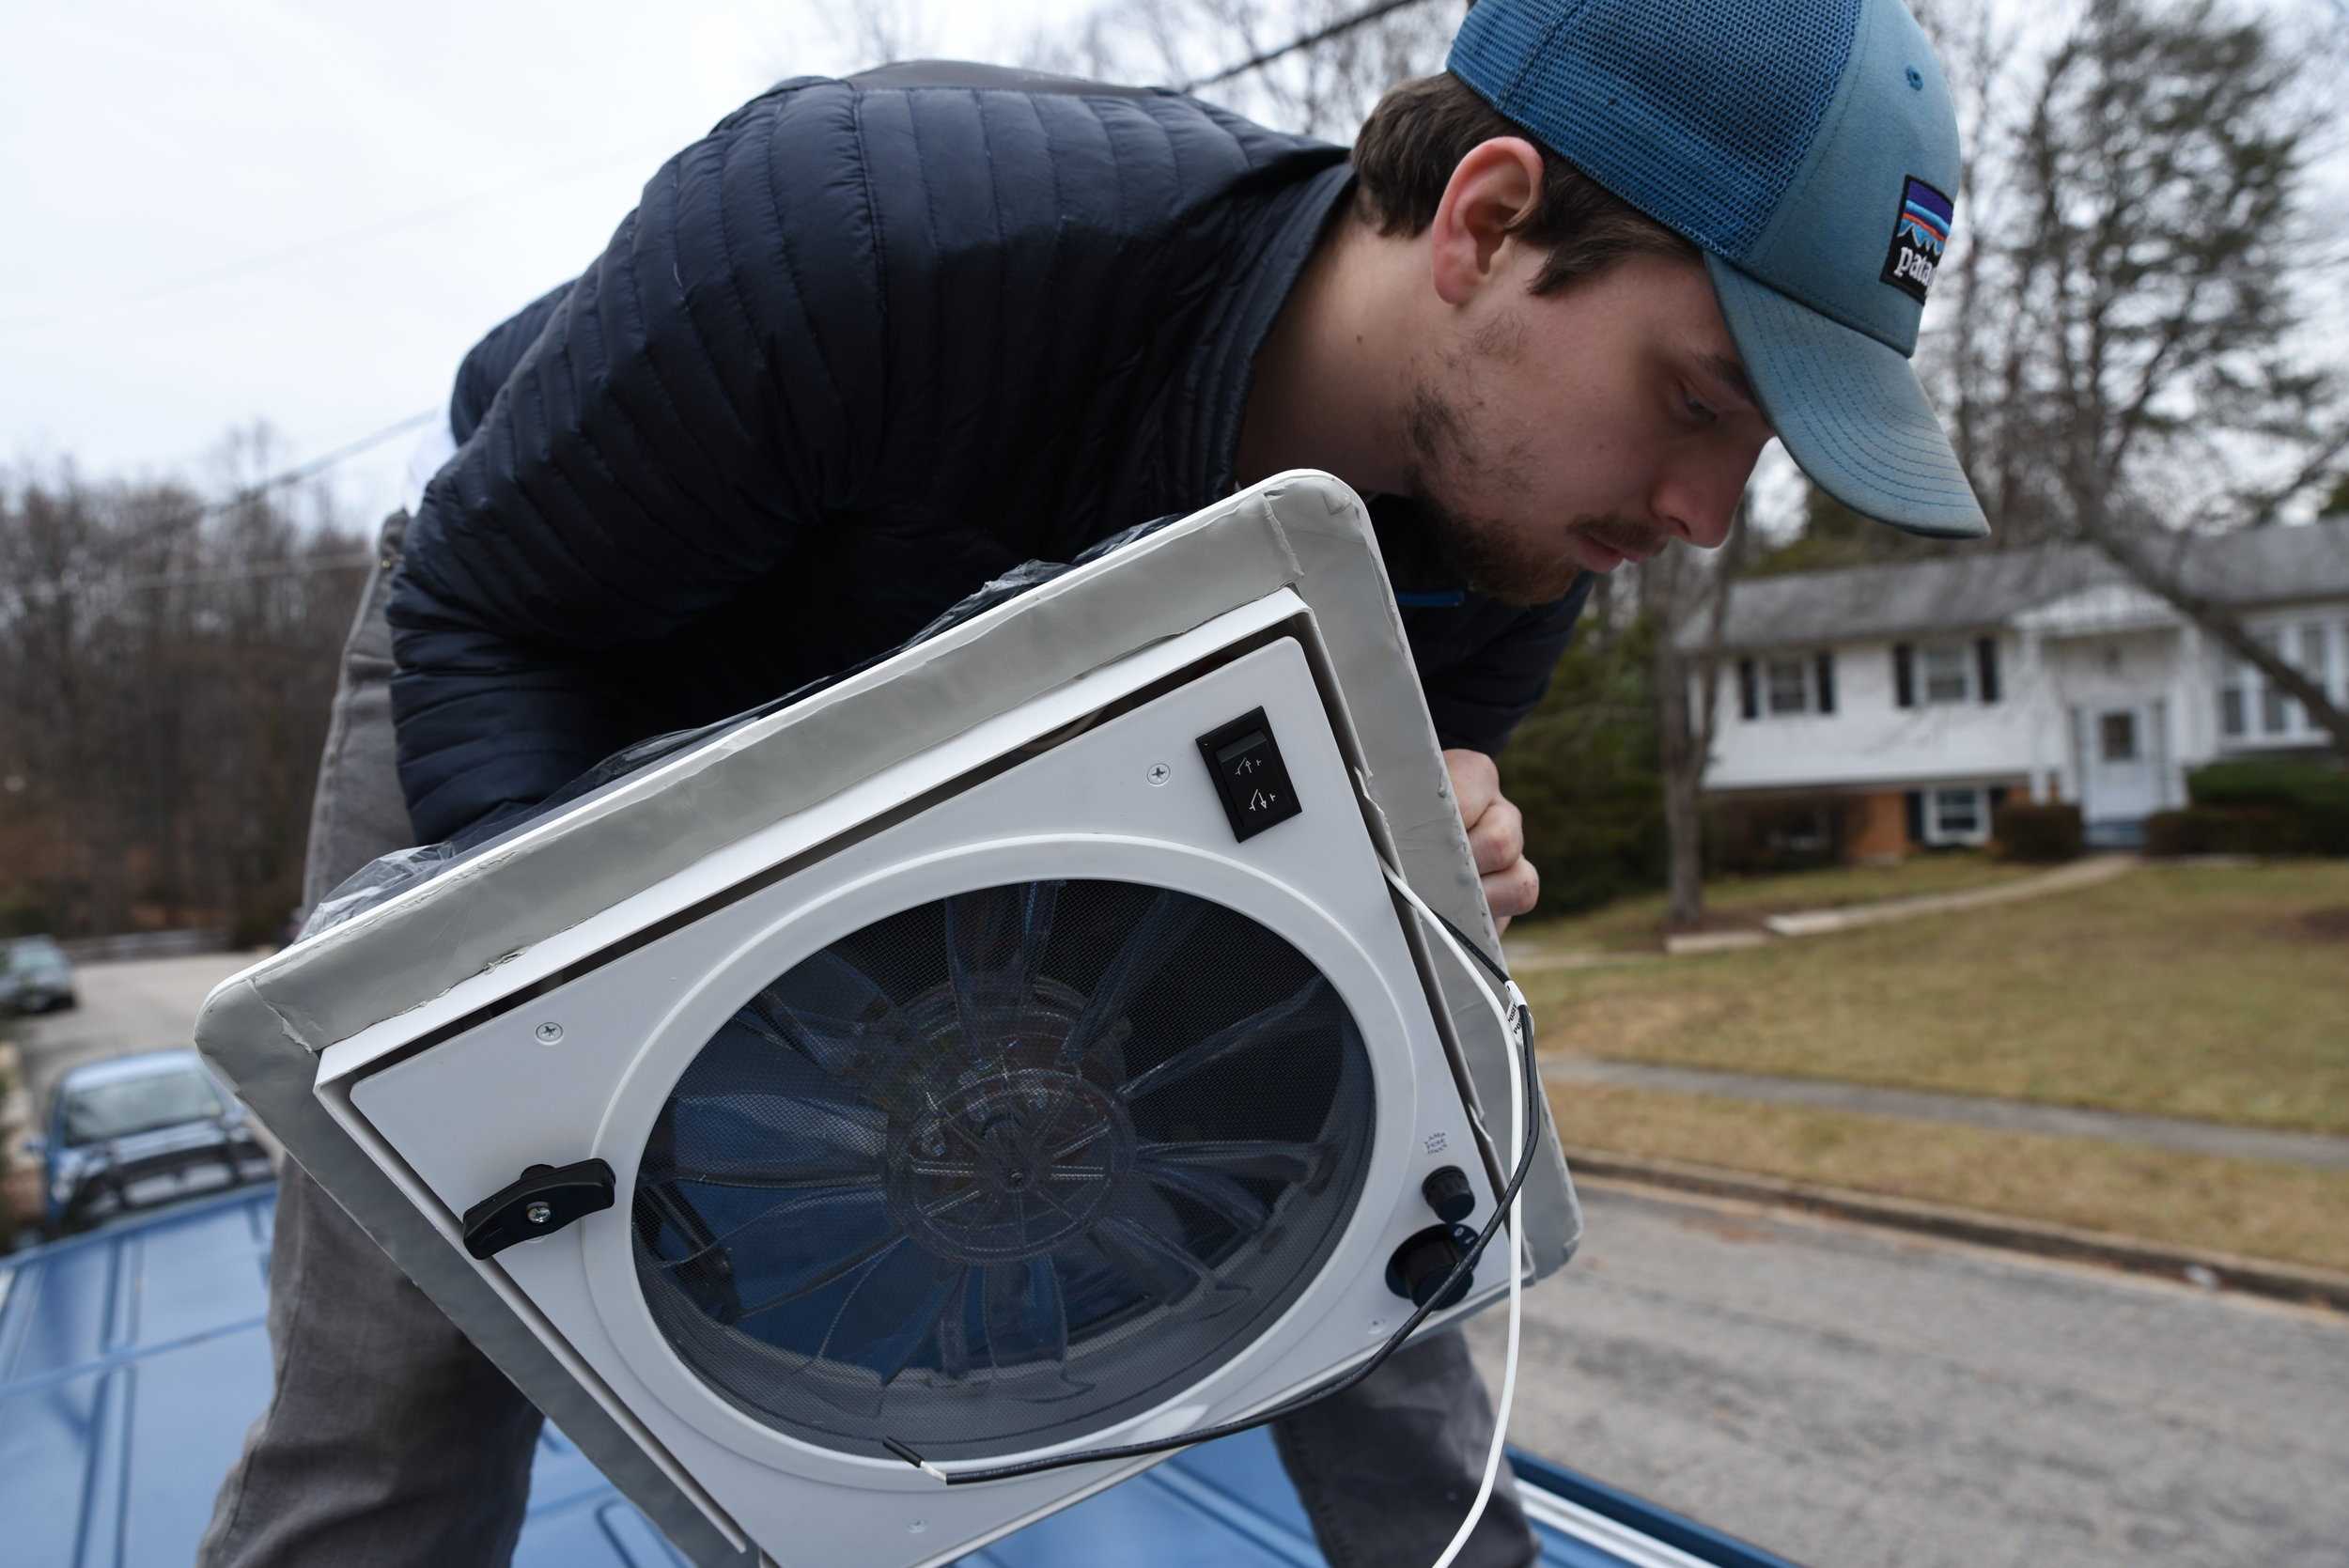 Ian installs the Fan-Tastic Vent with the butyl tape on the bottom of the vent's flange.